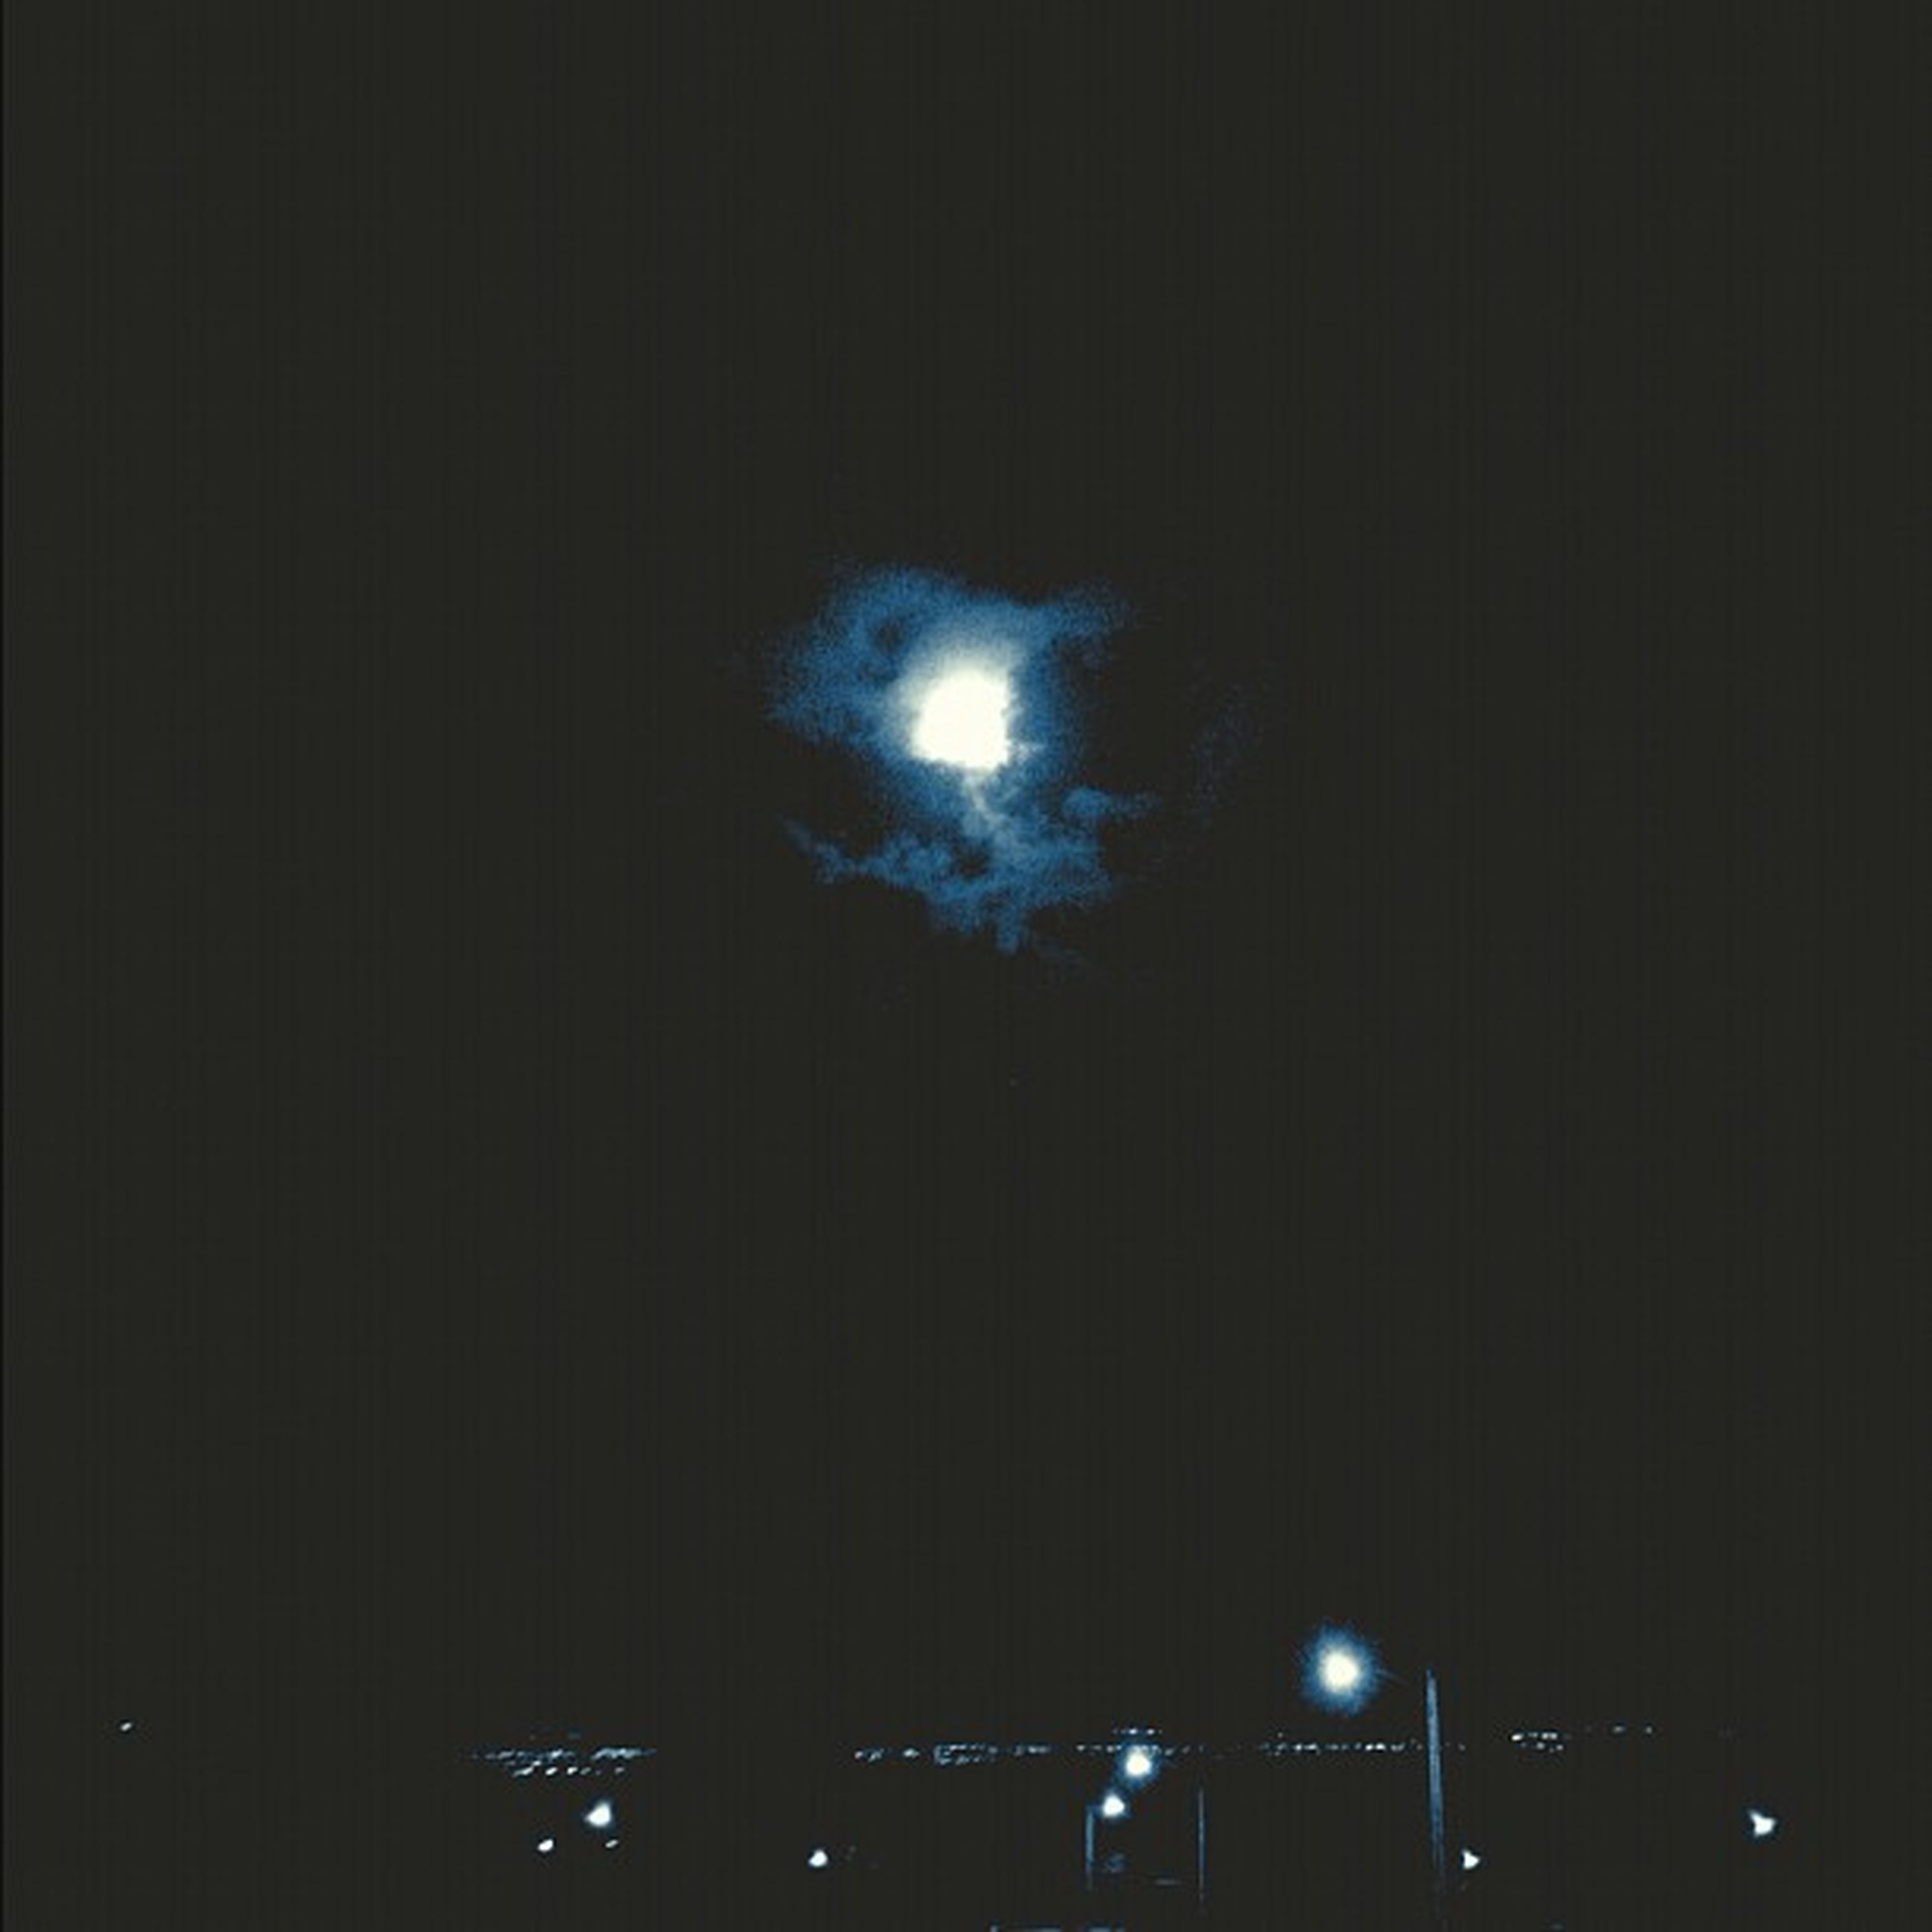 night, illuminated, lighting equipment, dark, low angle view, light - natural phenomenon, street light, copy space, built structure, electricity, architecture, glowing, no people, electric light, moon, window, light, building exterior, outdoors